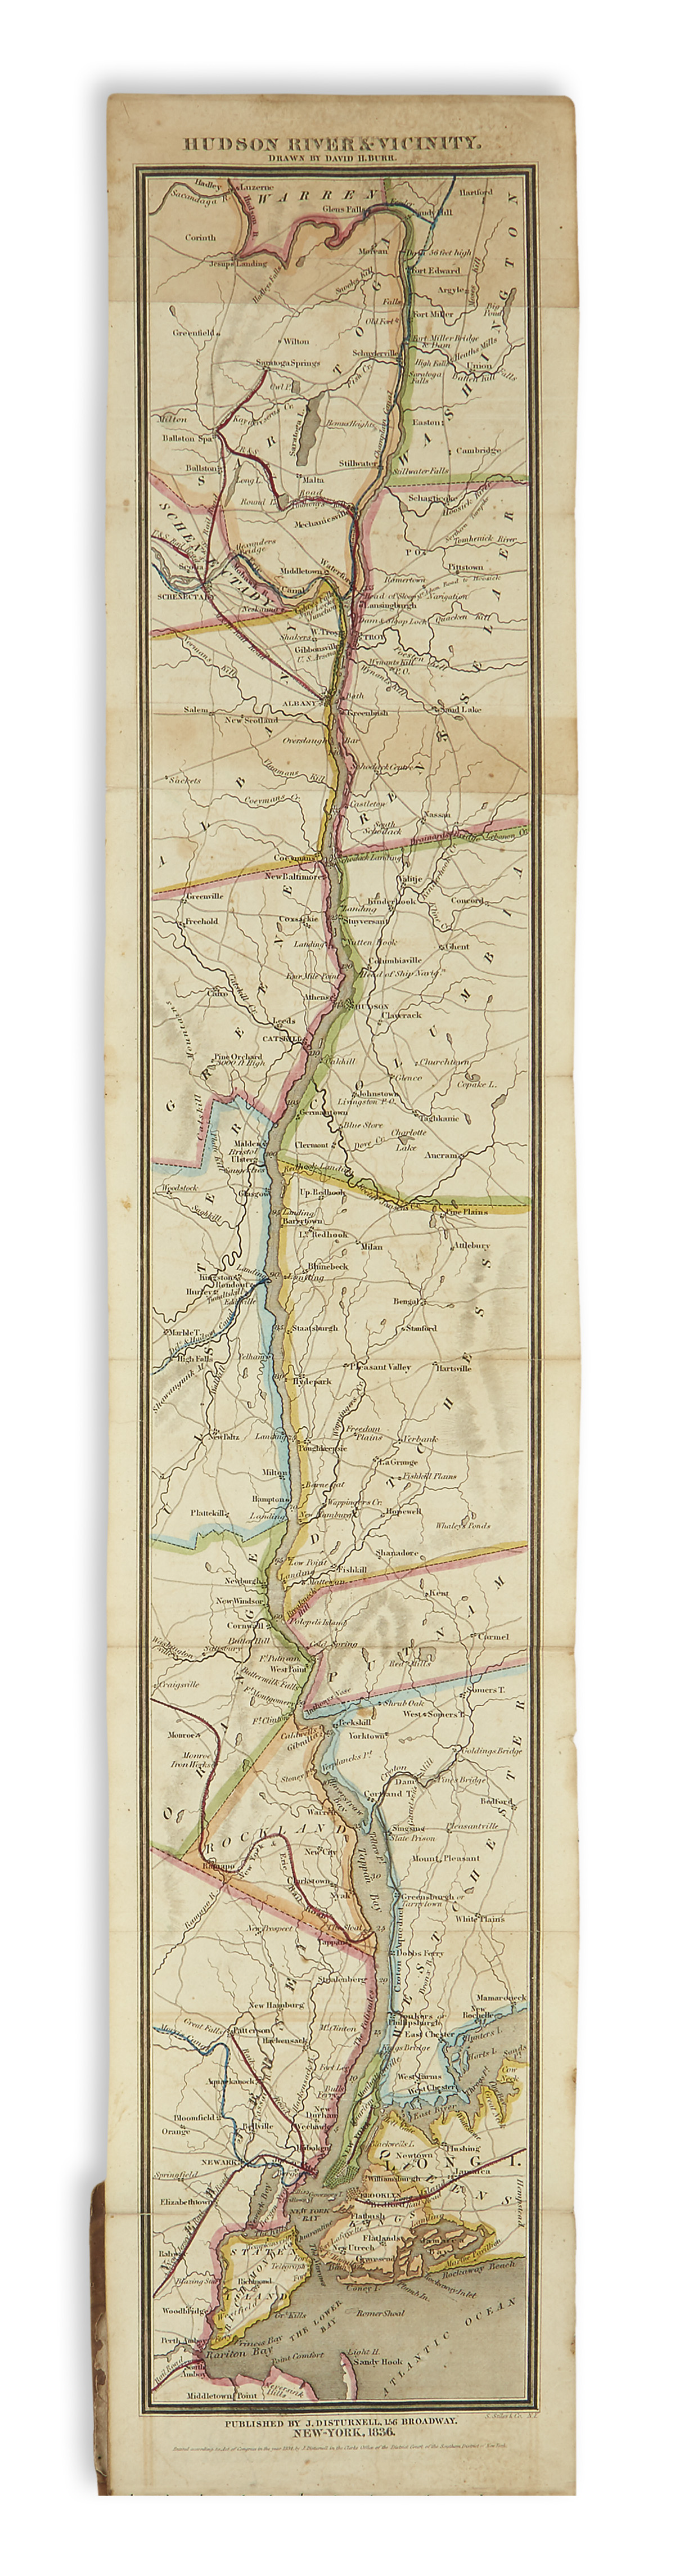 (NEW YORK.) Disturnell, John. The Travellers Guide Through the State of New-York, Canada, &